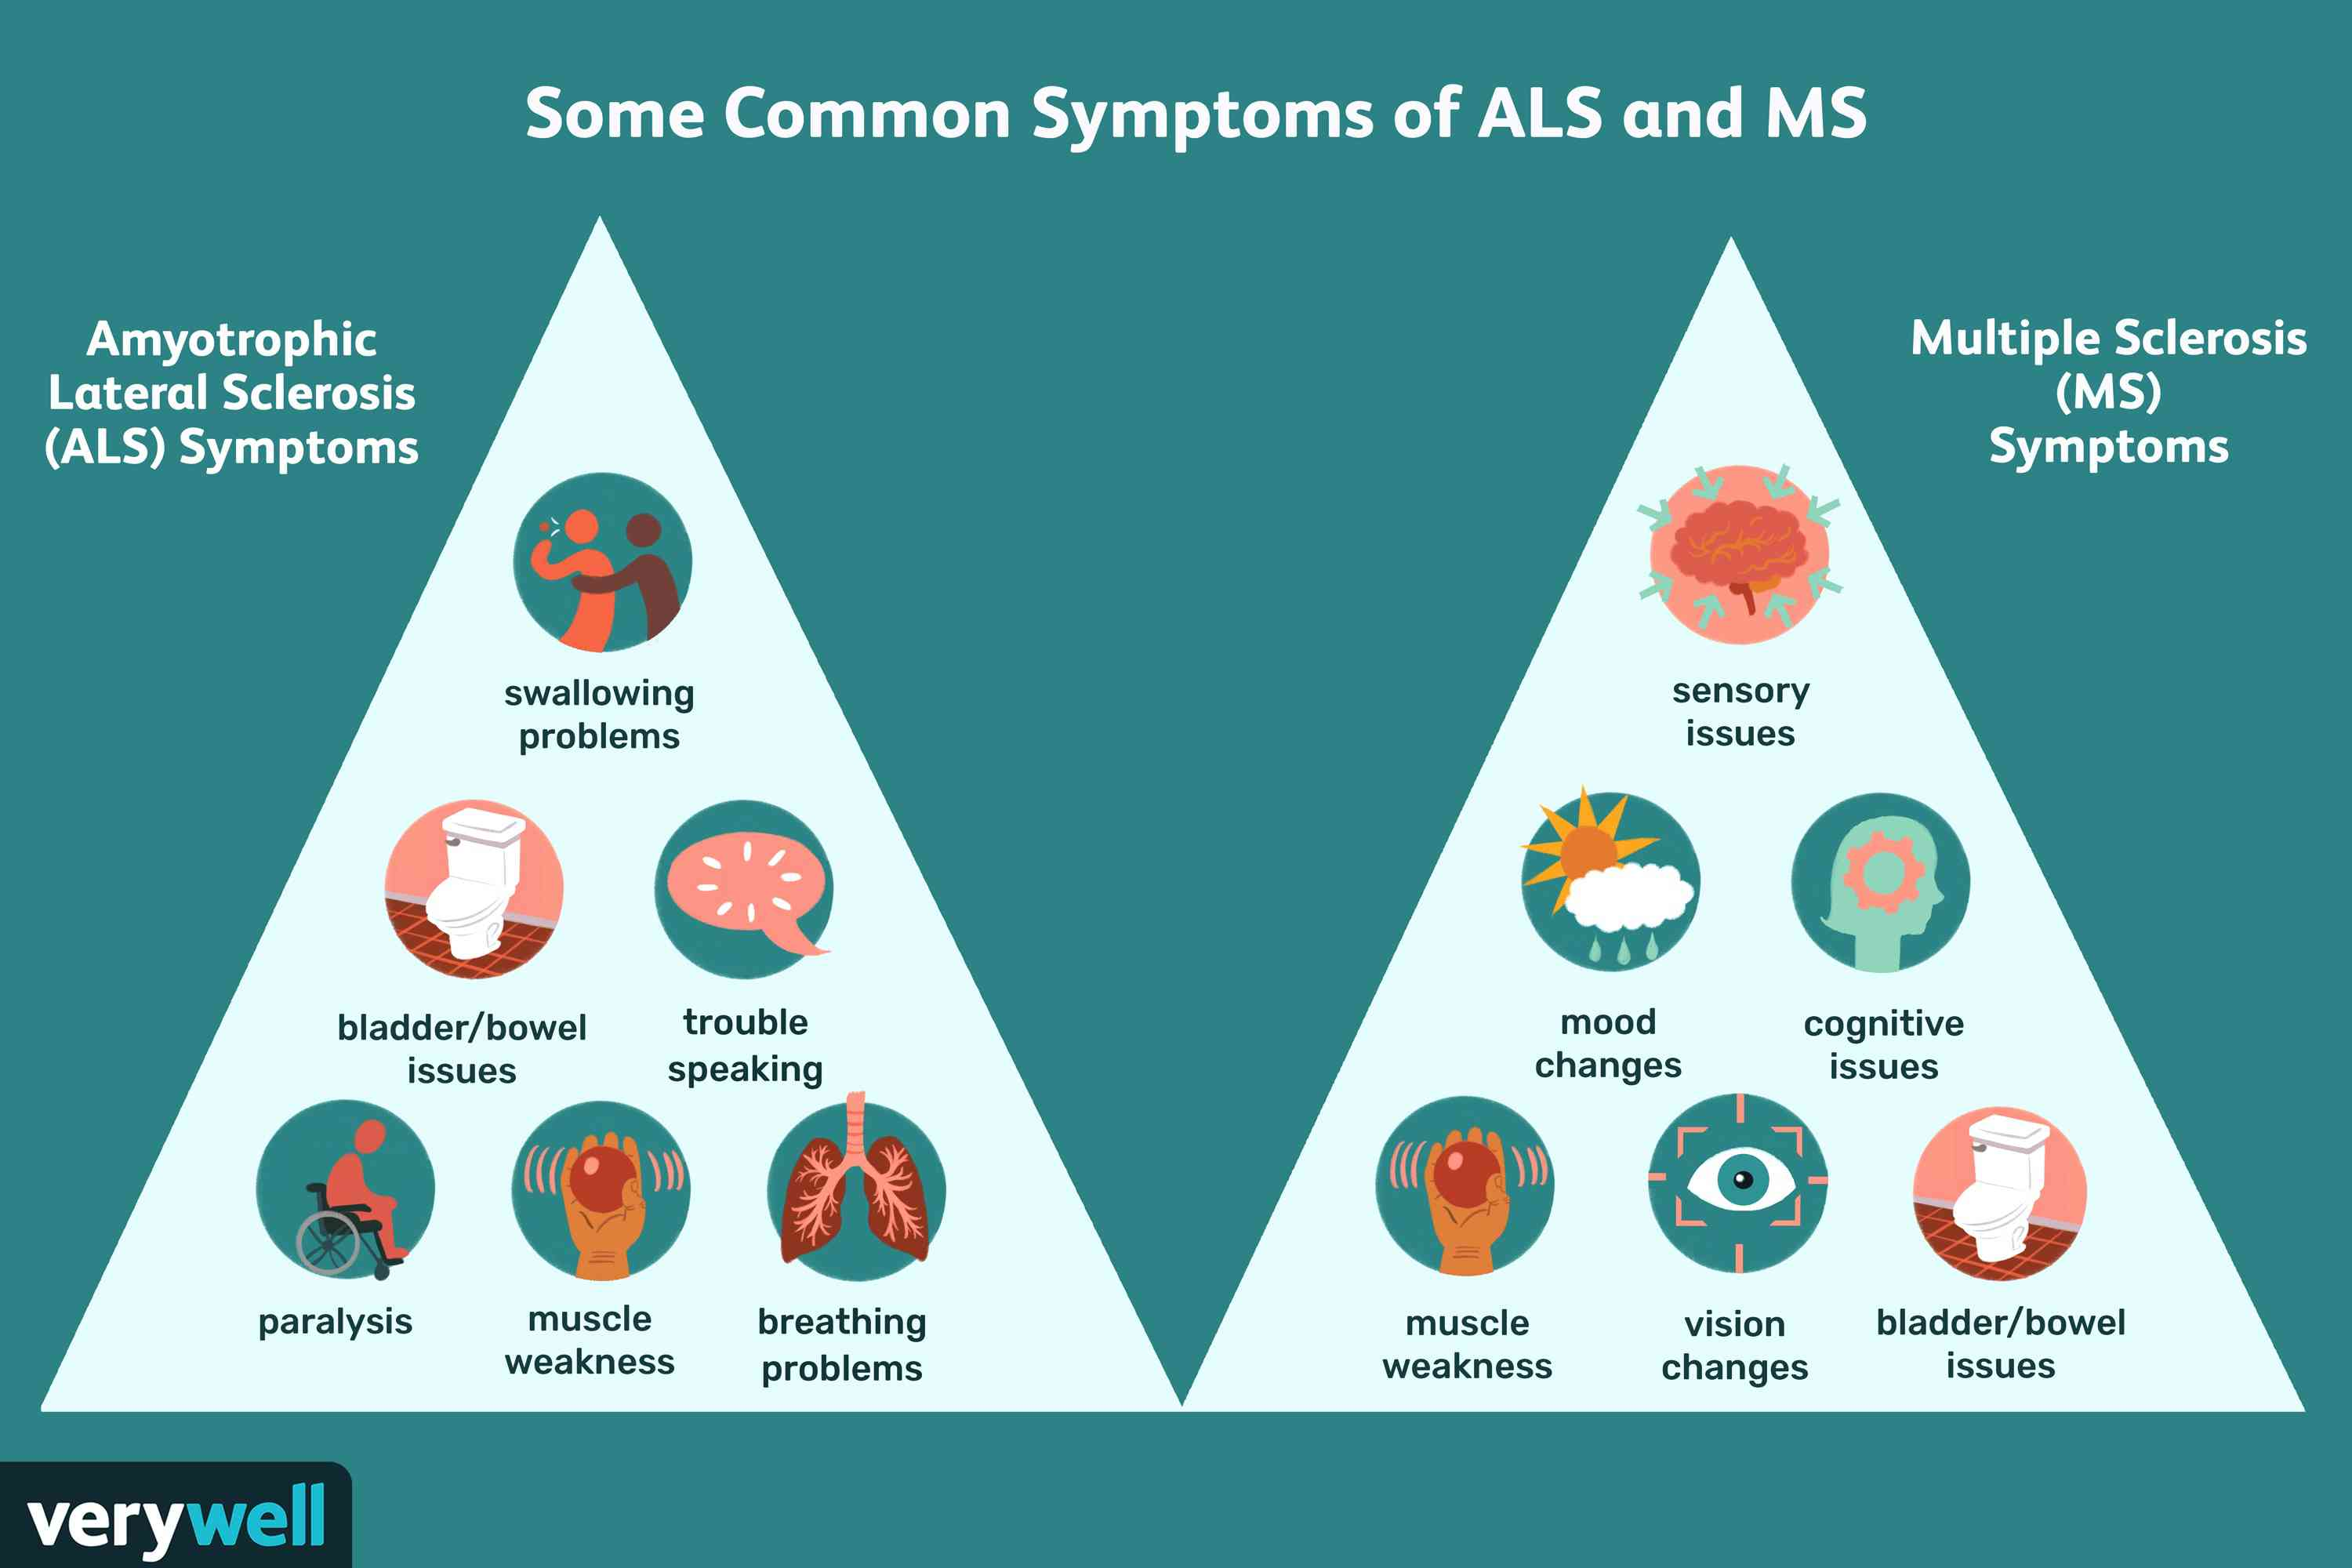 Common symptoms of ALS and MS.